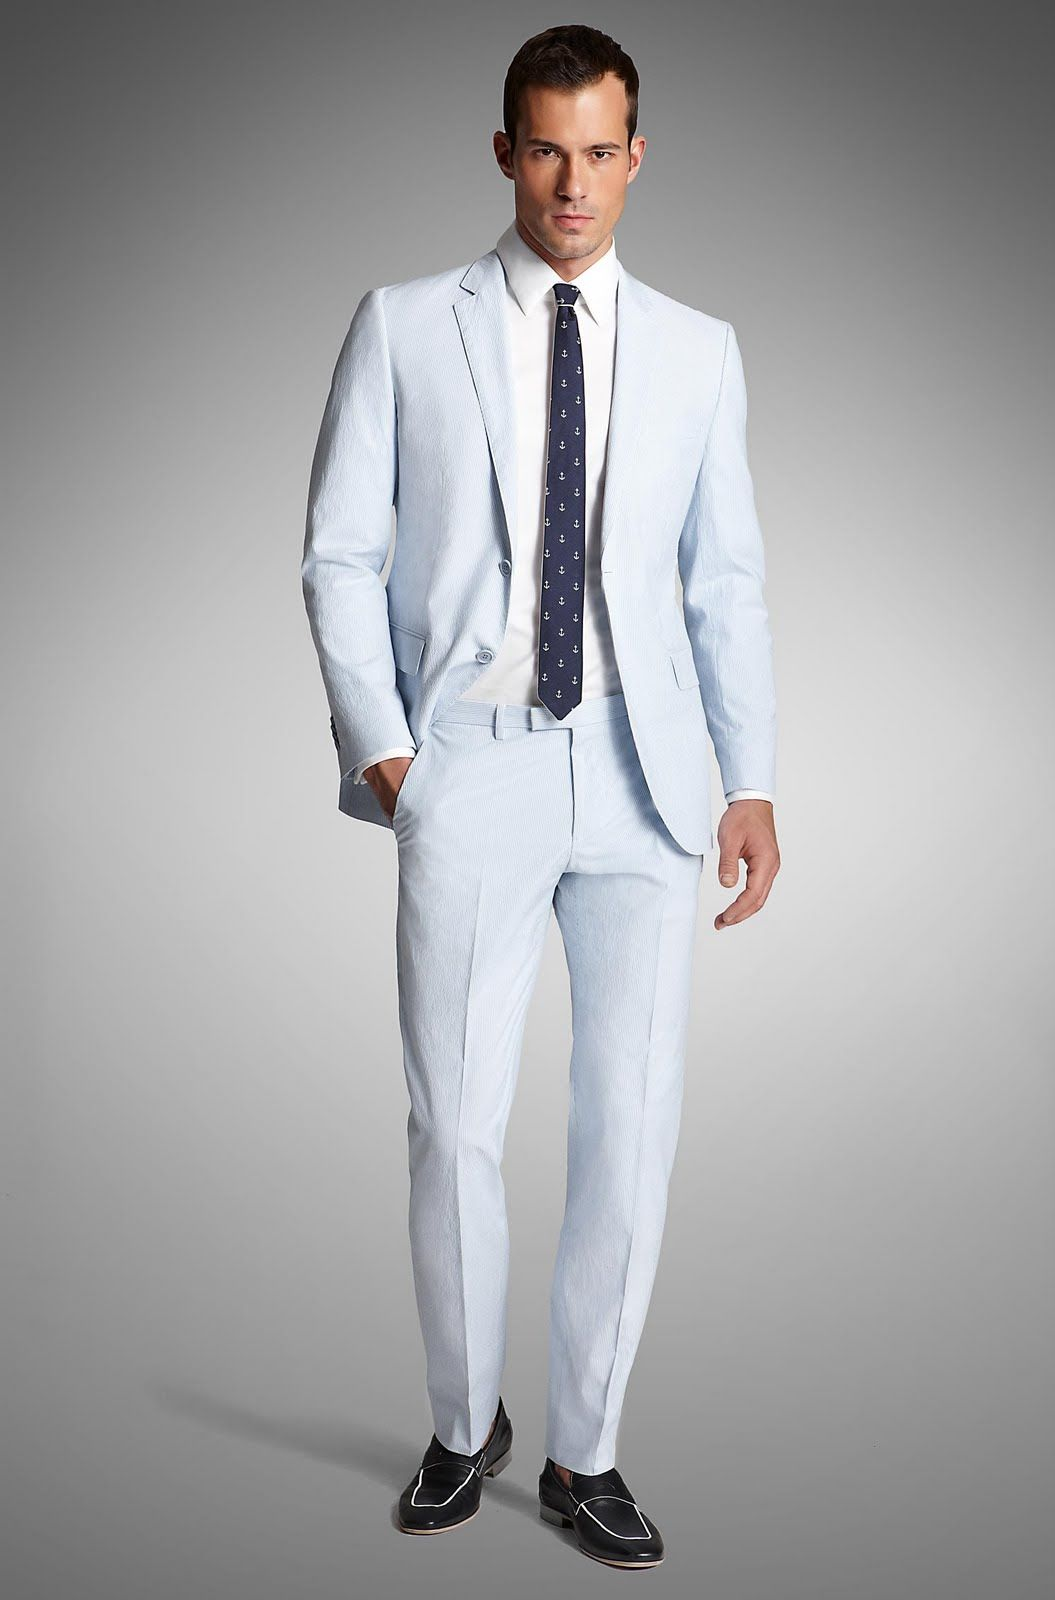 Mens Fashion Suits 2014 Hd Best Mens Suit In 2014 The